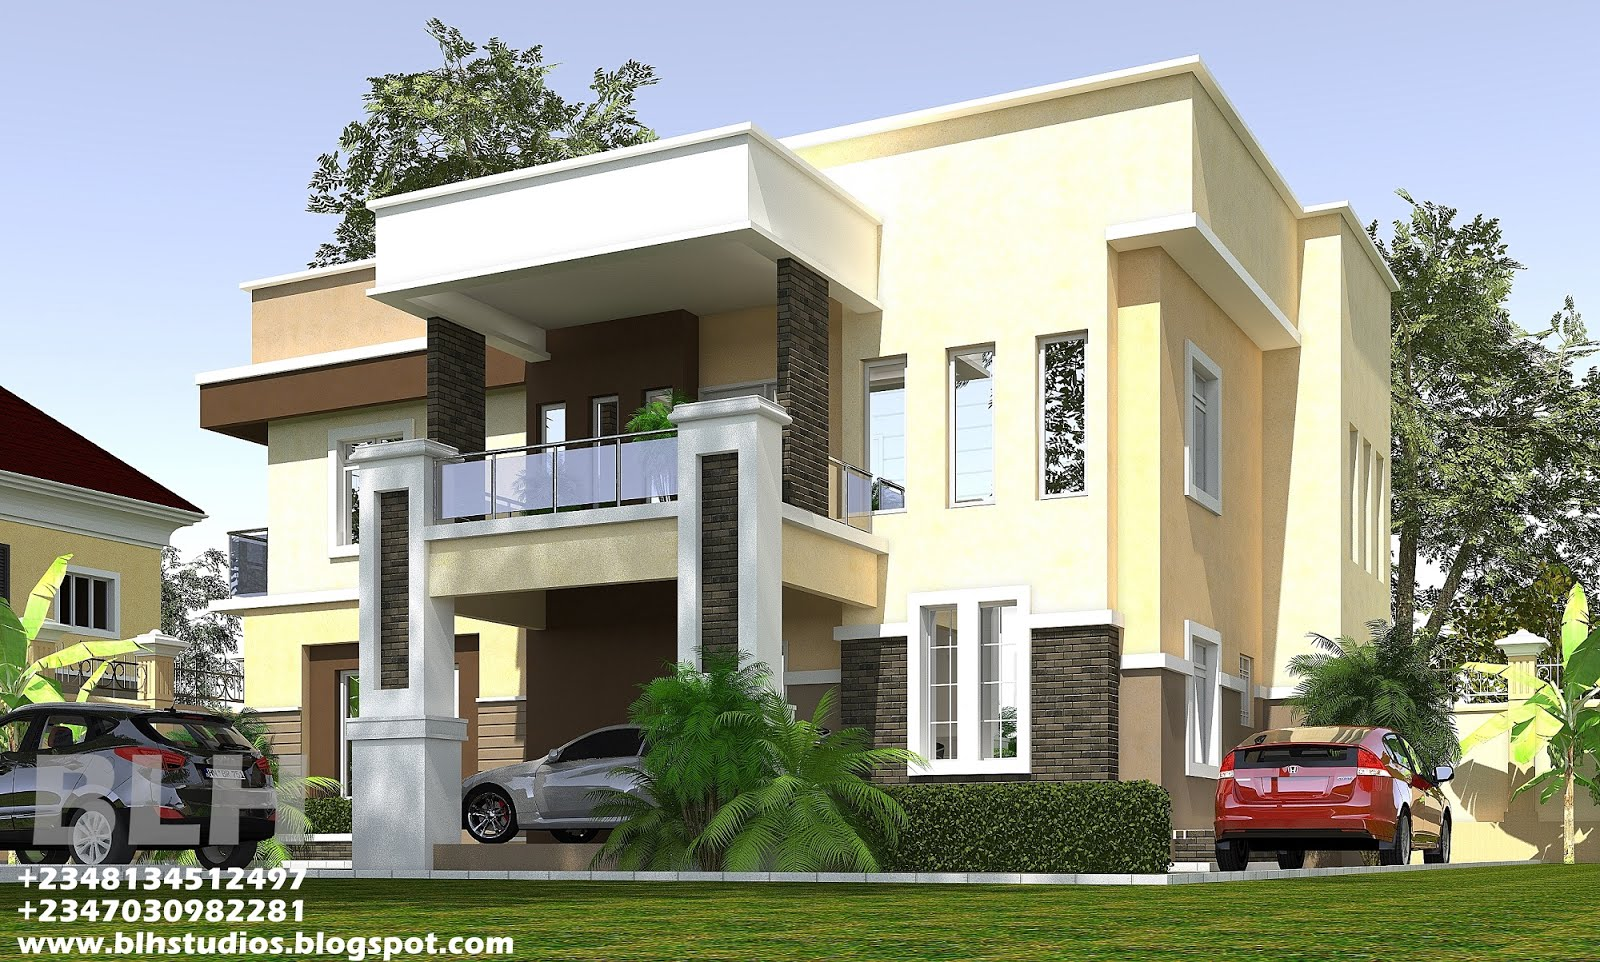 Architectural Designs By Blacklakehouse 2 Bedroom Bungalow 3